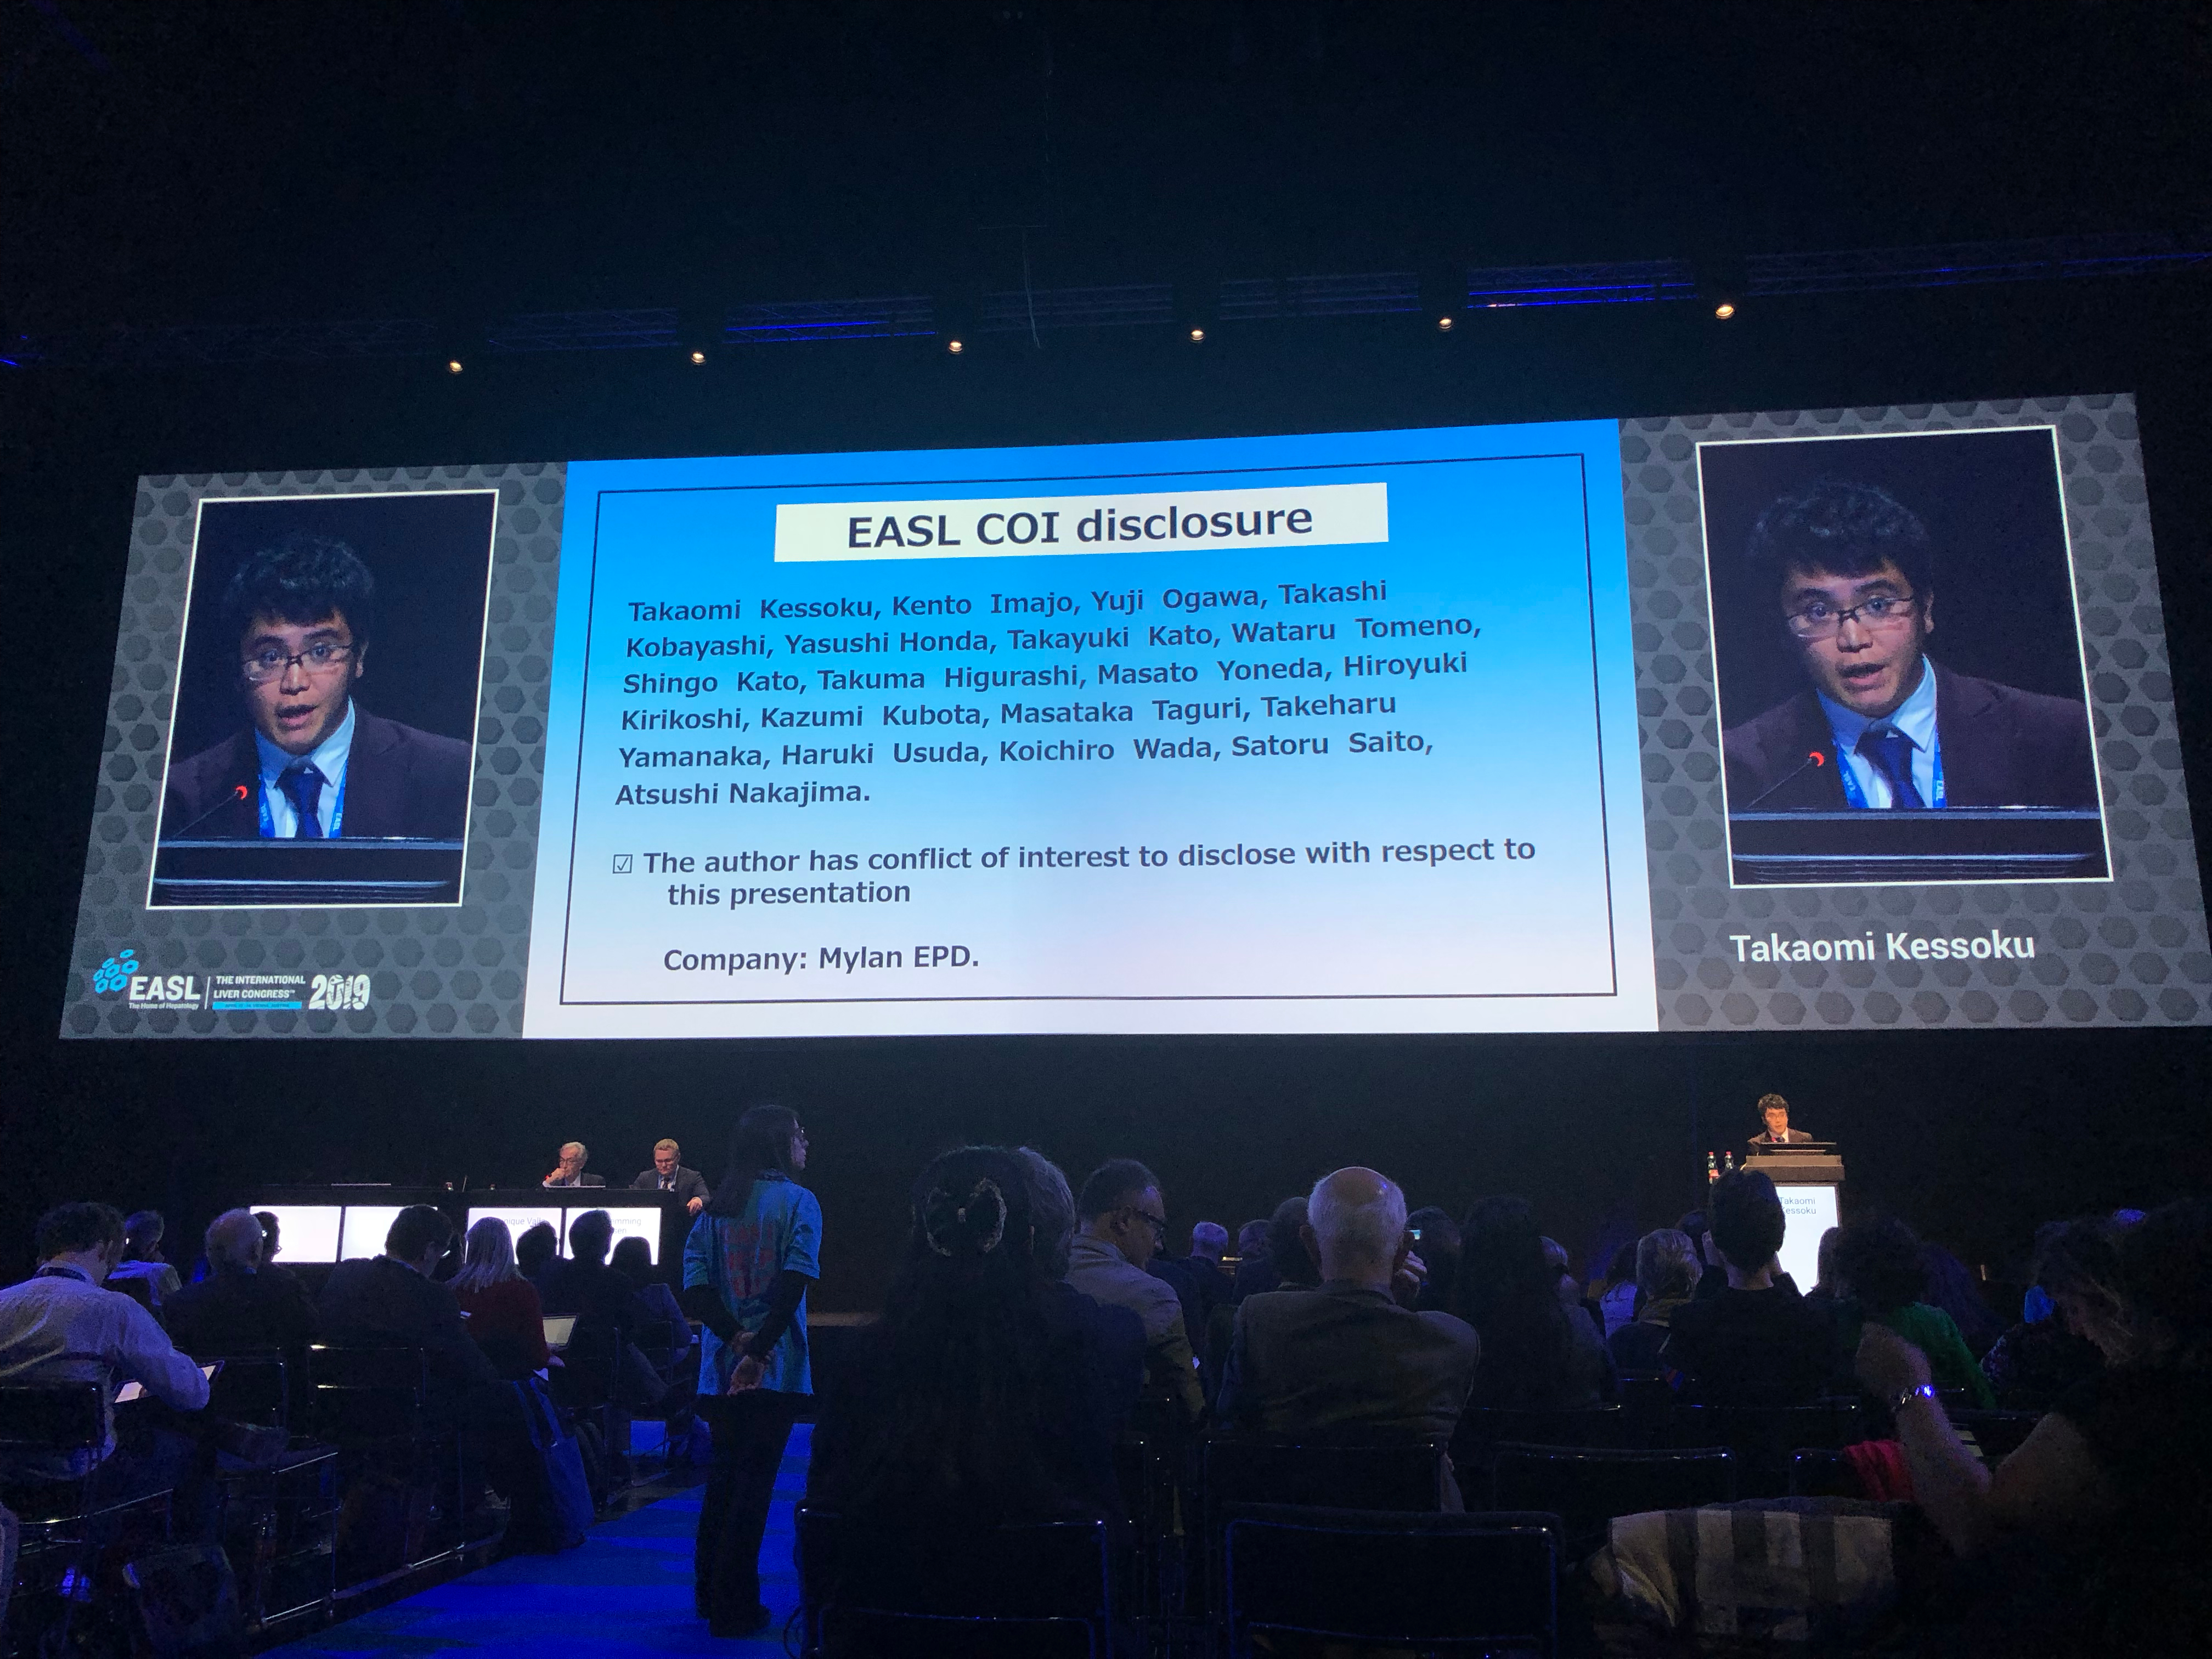 EASL(欧州肝臓学会) International Liver Congress 2019